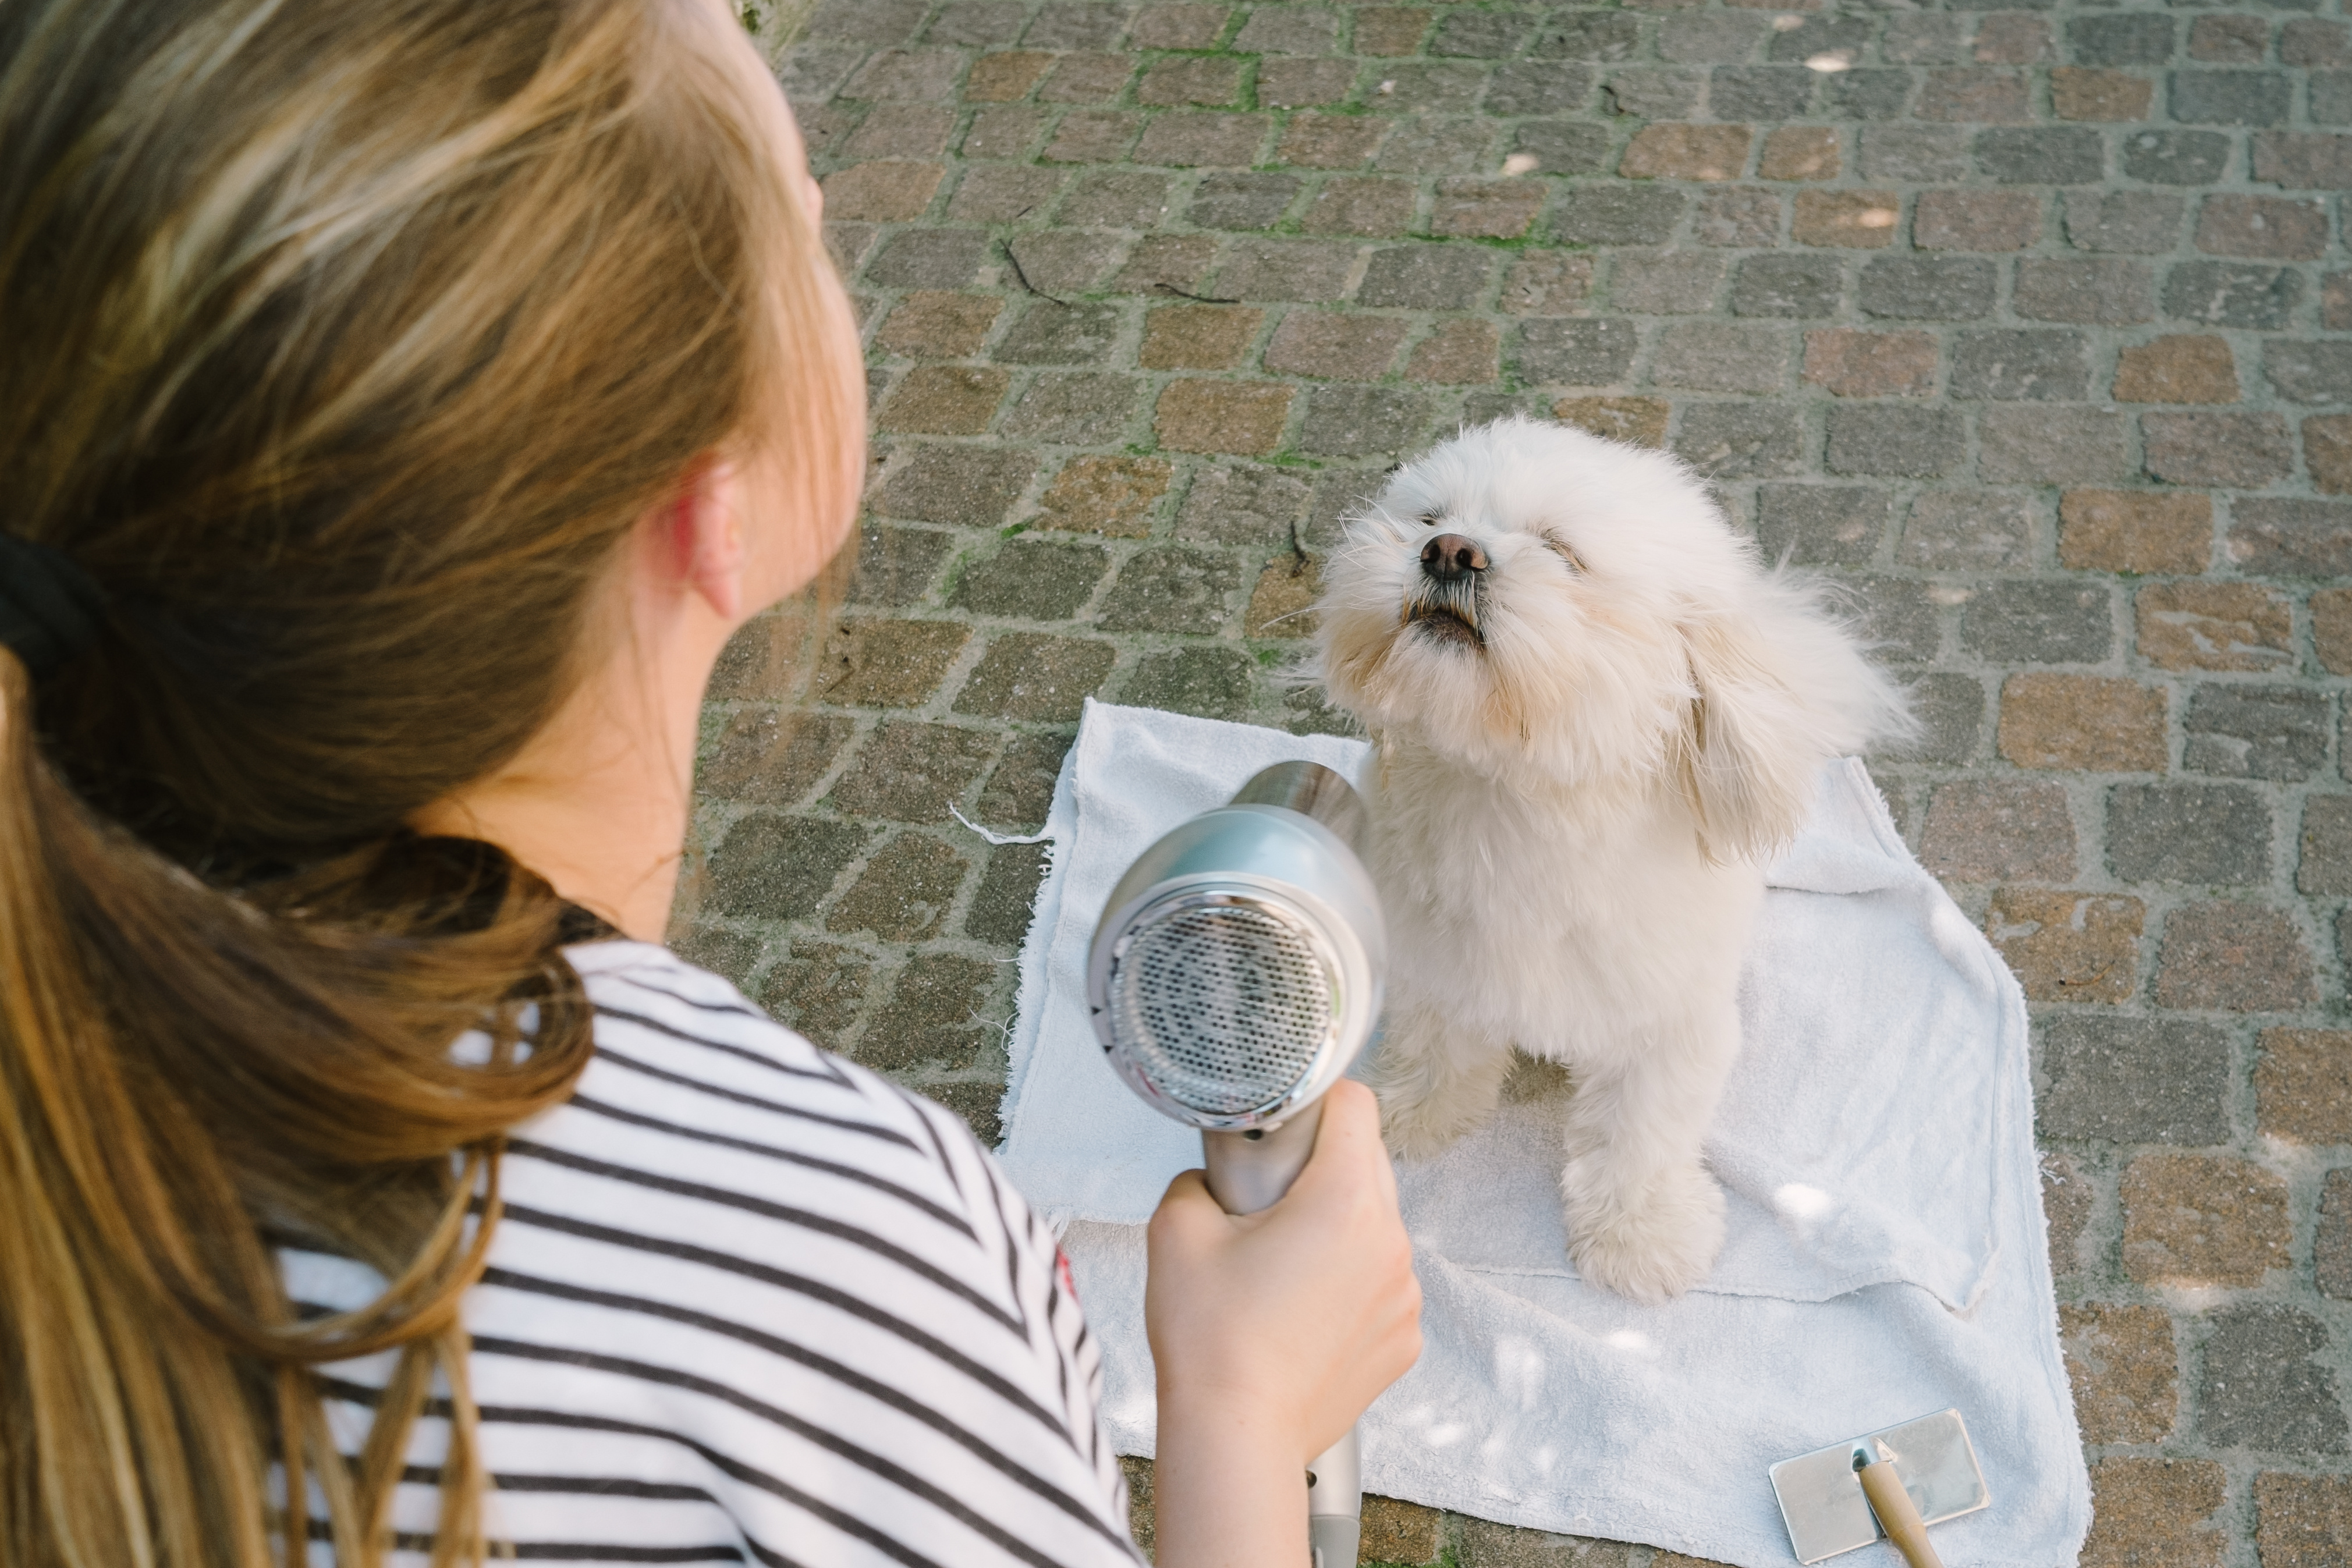 Jobs range from Washing Dogs, Dog Walking, and General Pet Care while Pets stay at your home